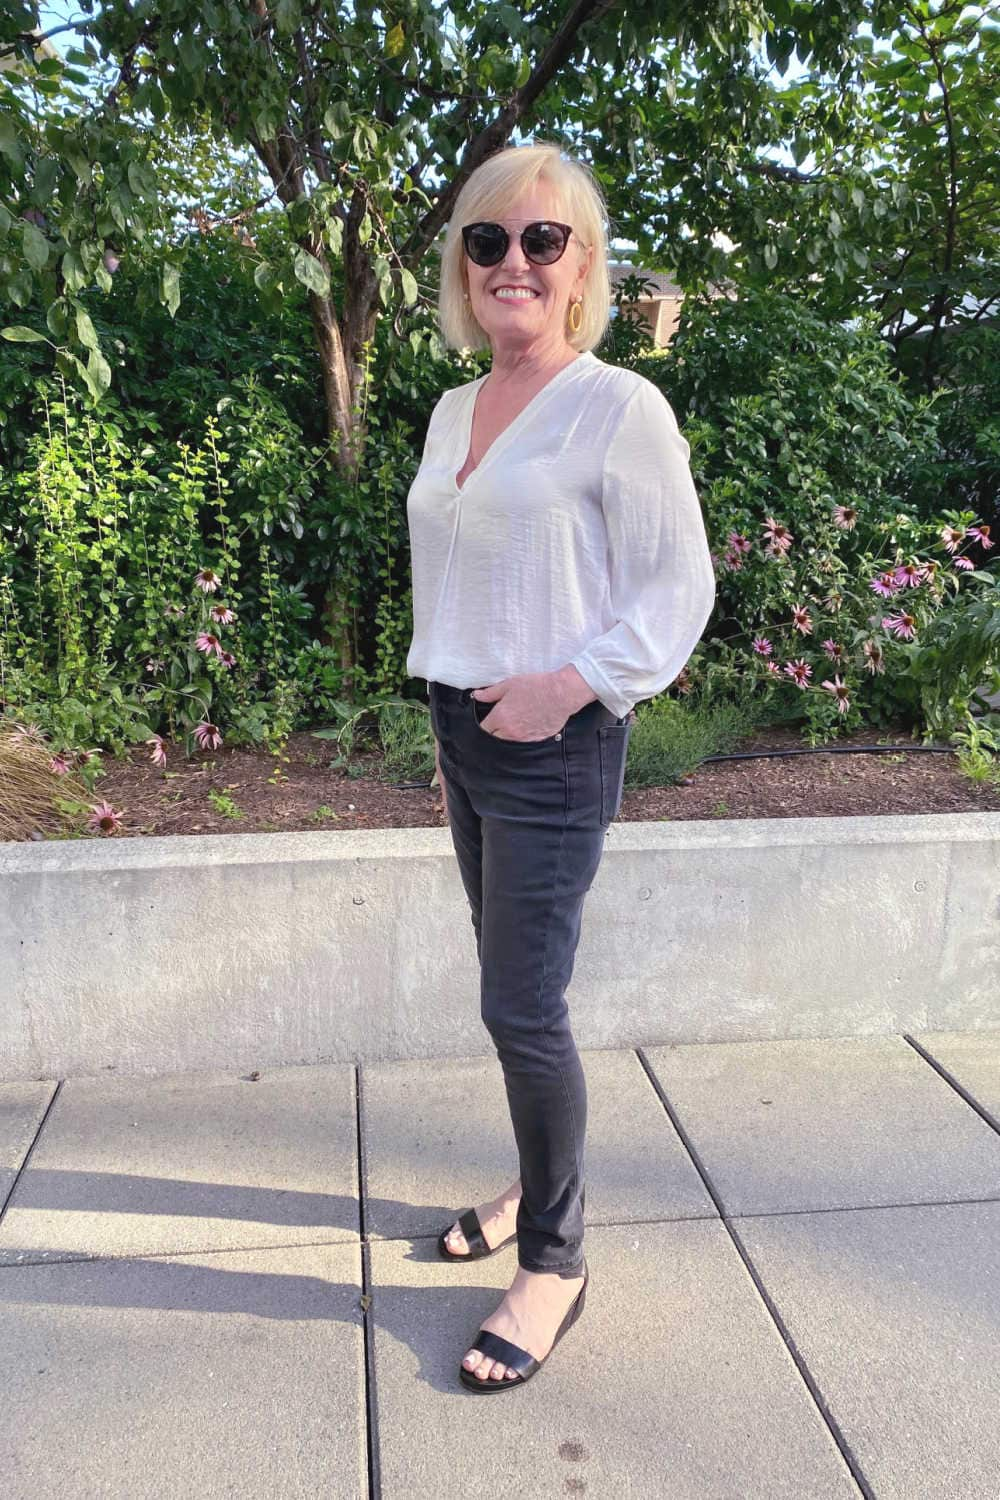 fashion blogger Jennifer Connolly wearign Good American jeans